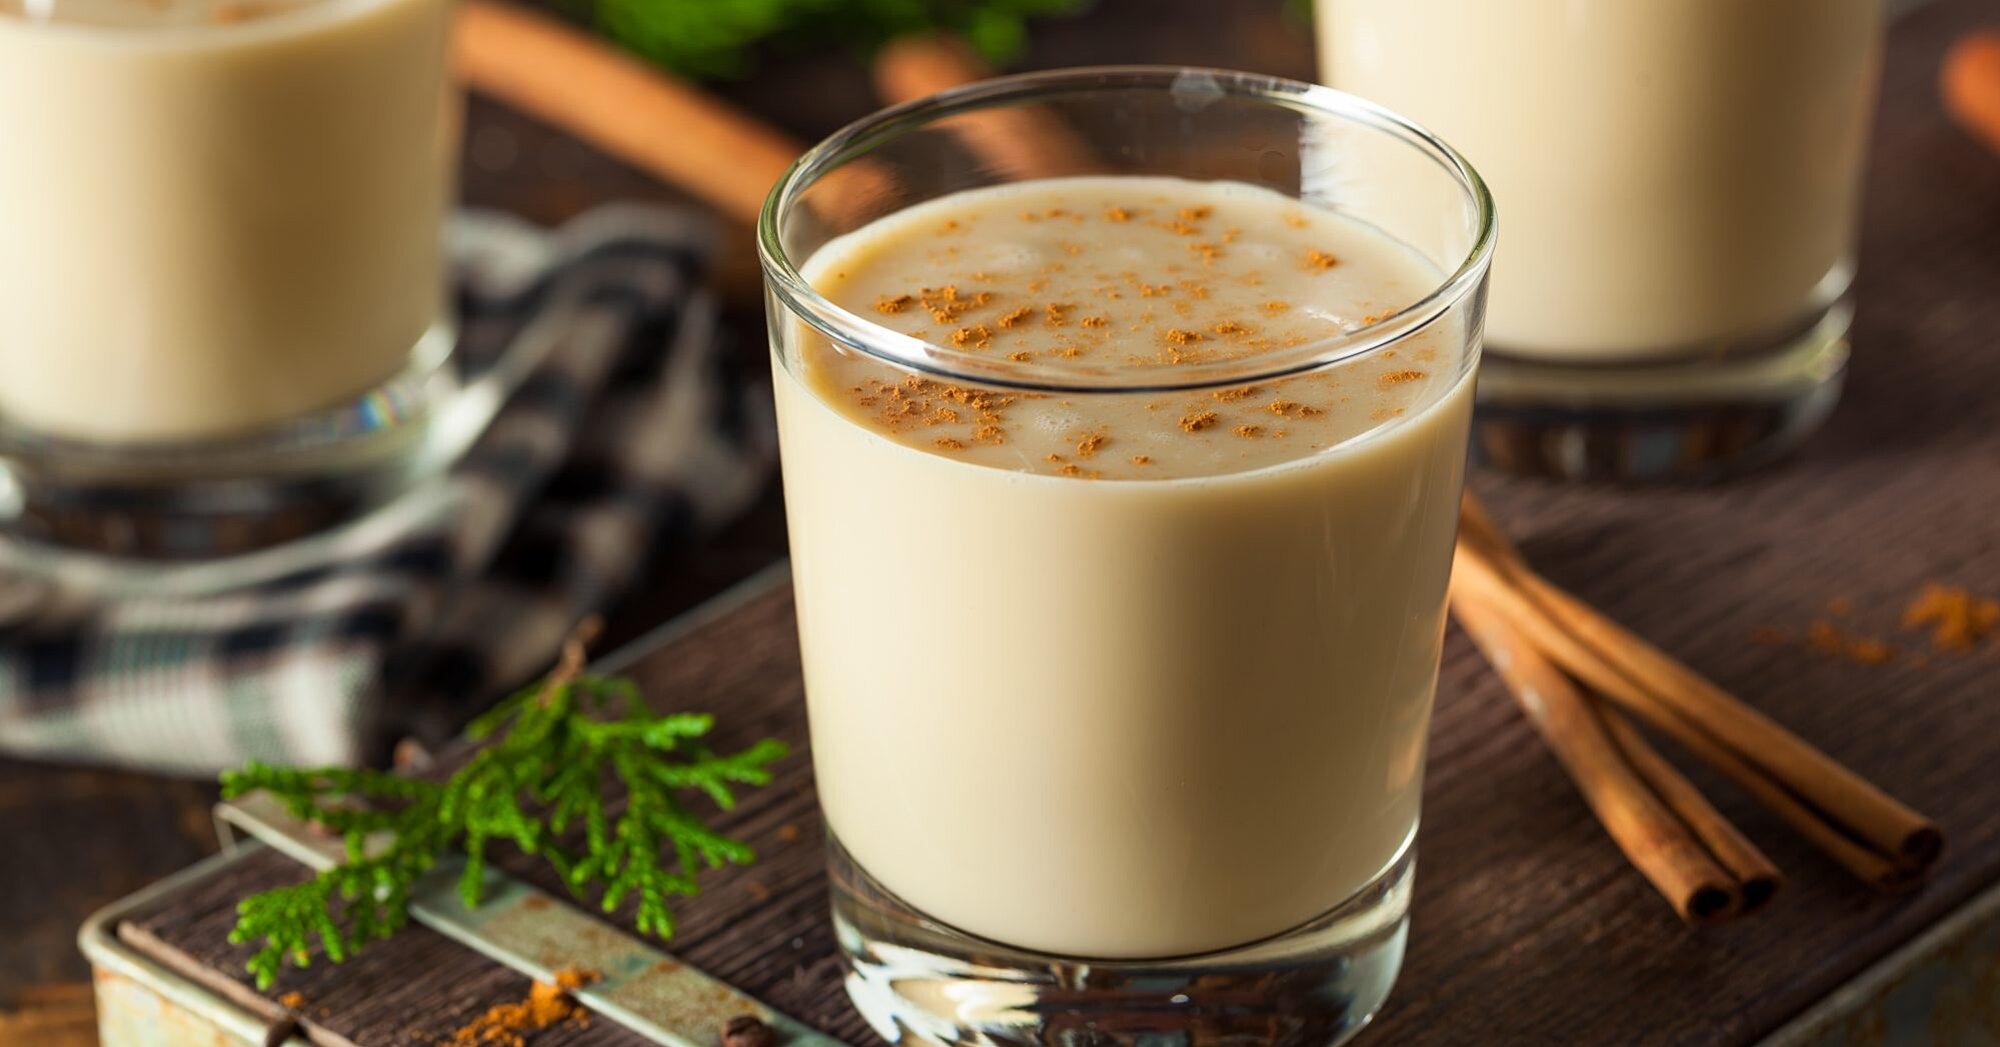 5 Ways to Spike Store-Bought Eggnog